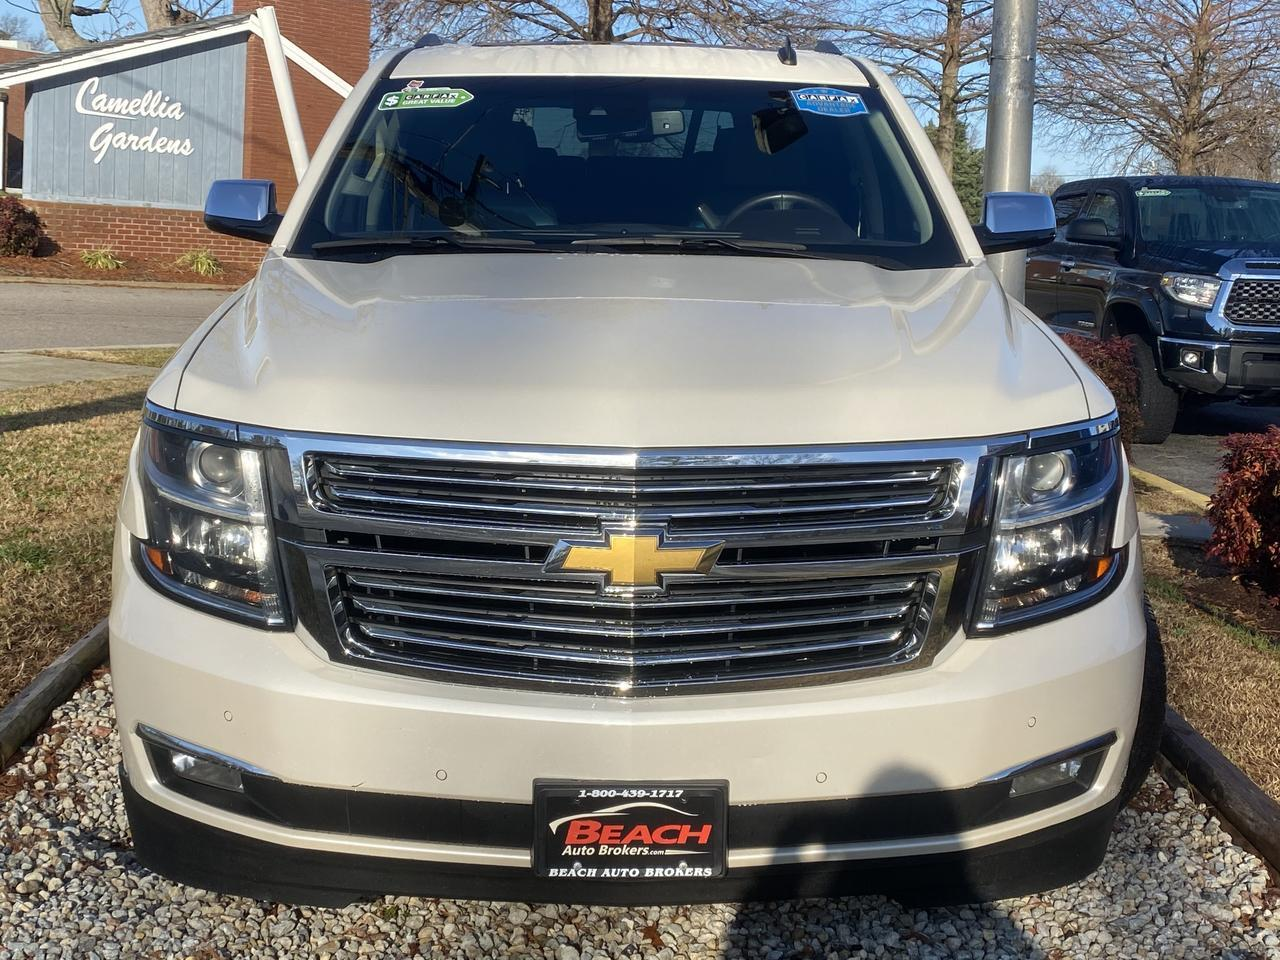 2015 CHEVROLET SUBURBAN LTZ, WARRANTY, LEATHER, NAV, SUNROOF, HEATED/COOLED SEATS, DVD PLAYER, FULLY LOADED! Norfolk VA